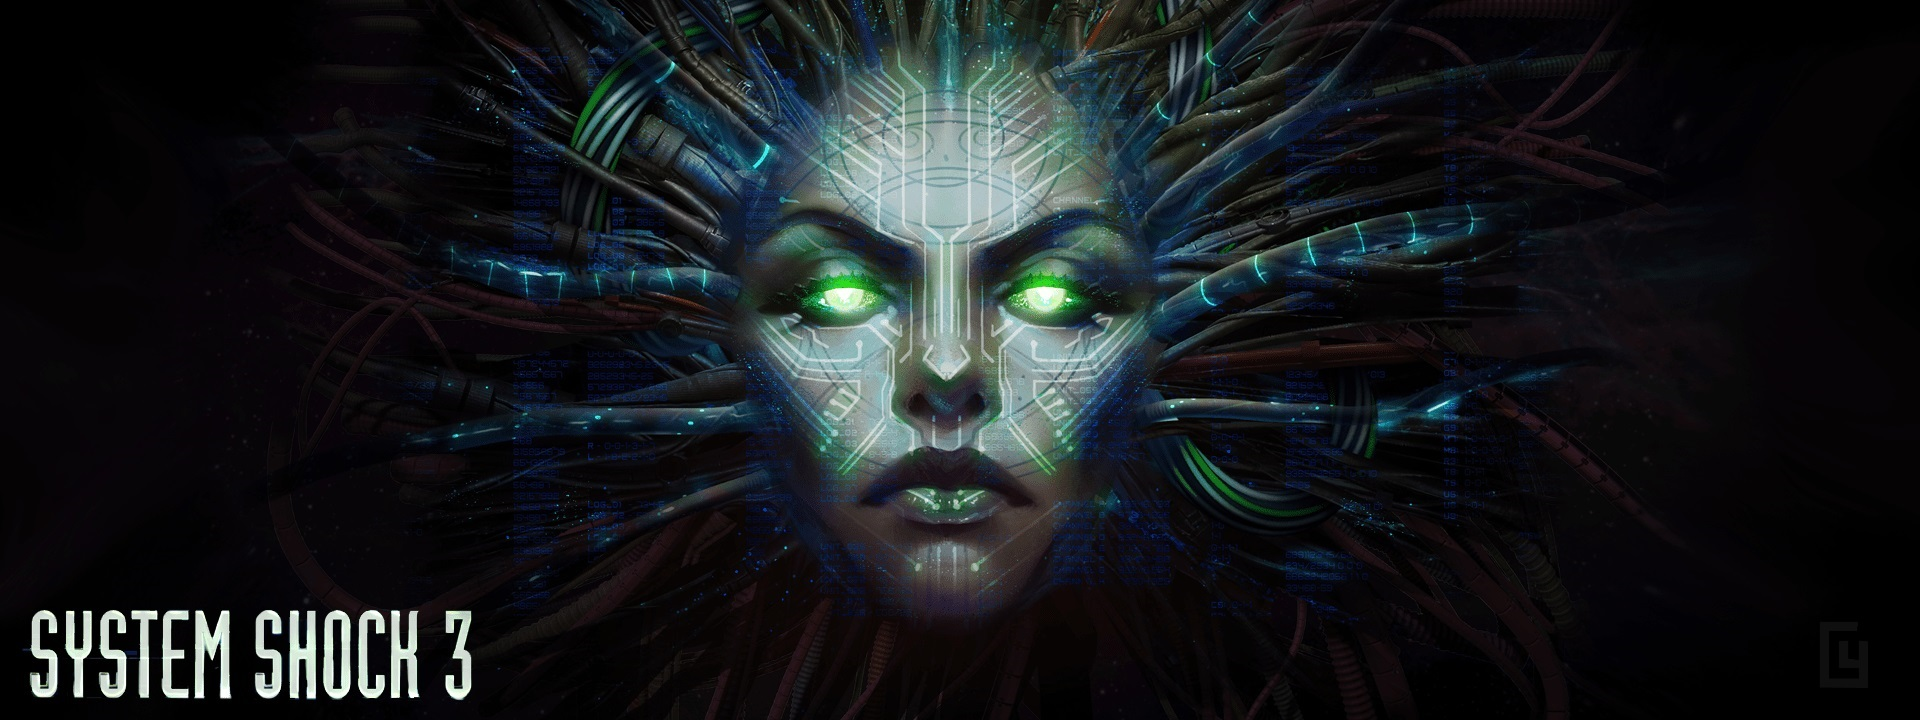 System Shock 3 shows off some pre-alpha gameplay footage